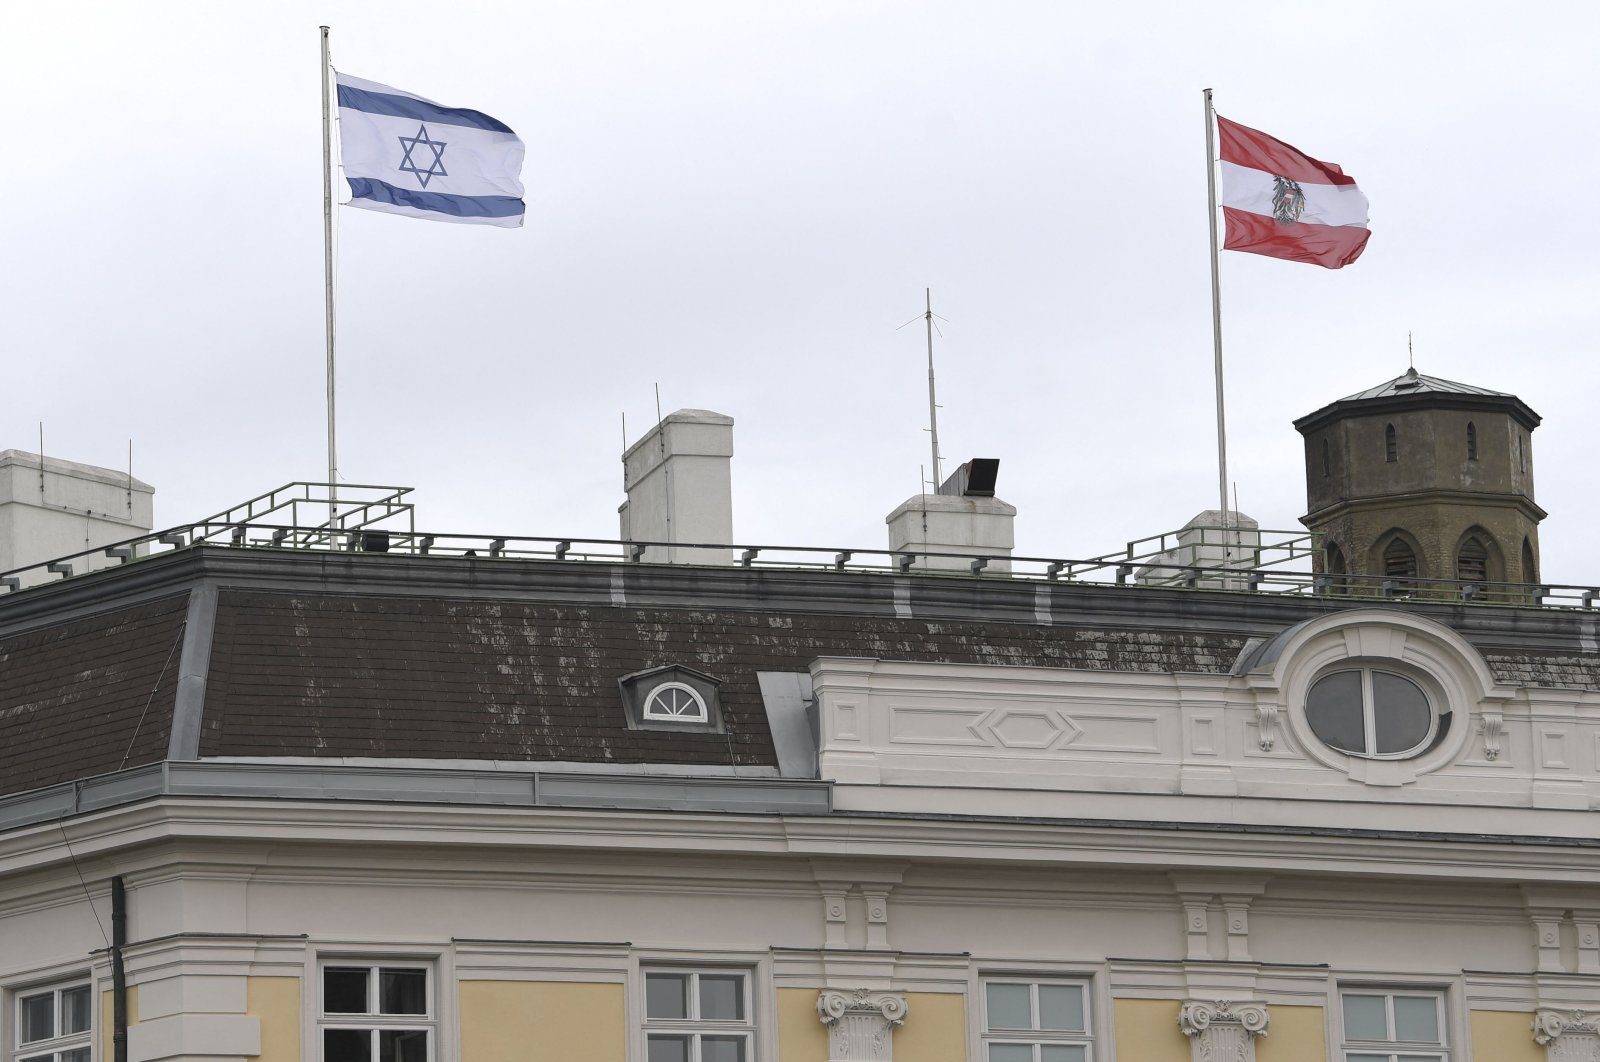 The Austrian Federal Chancellery raised the Israeli flag (L) as a sign of solidarity, in Vienna on May 14, 2021. (Helmut Fohringer/APA via AFP)